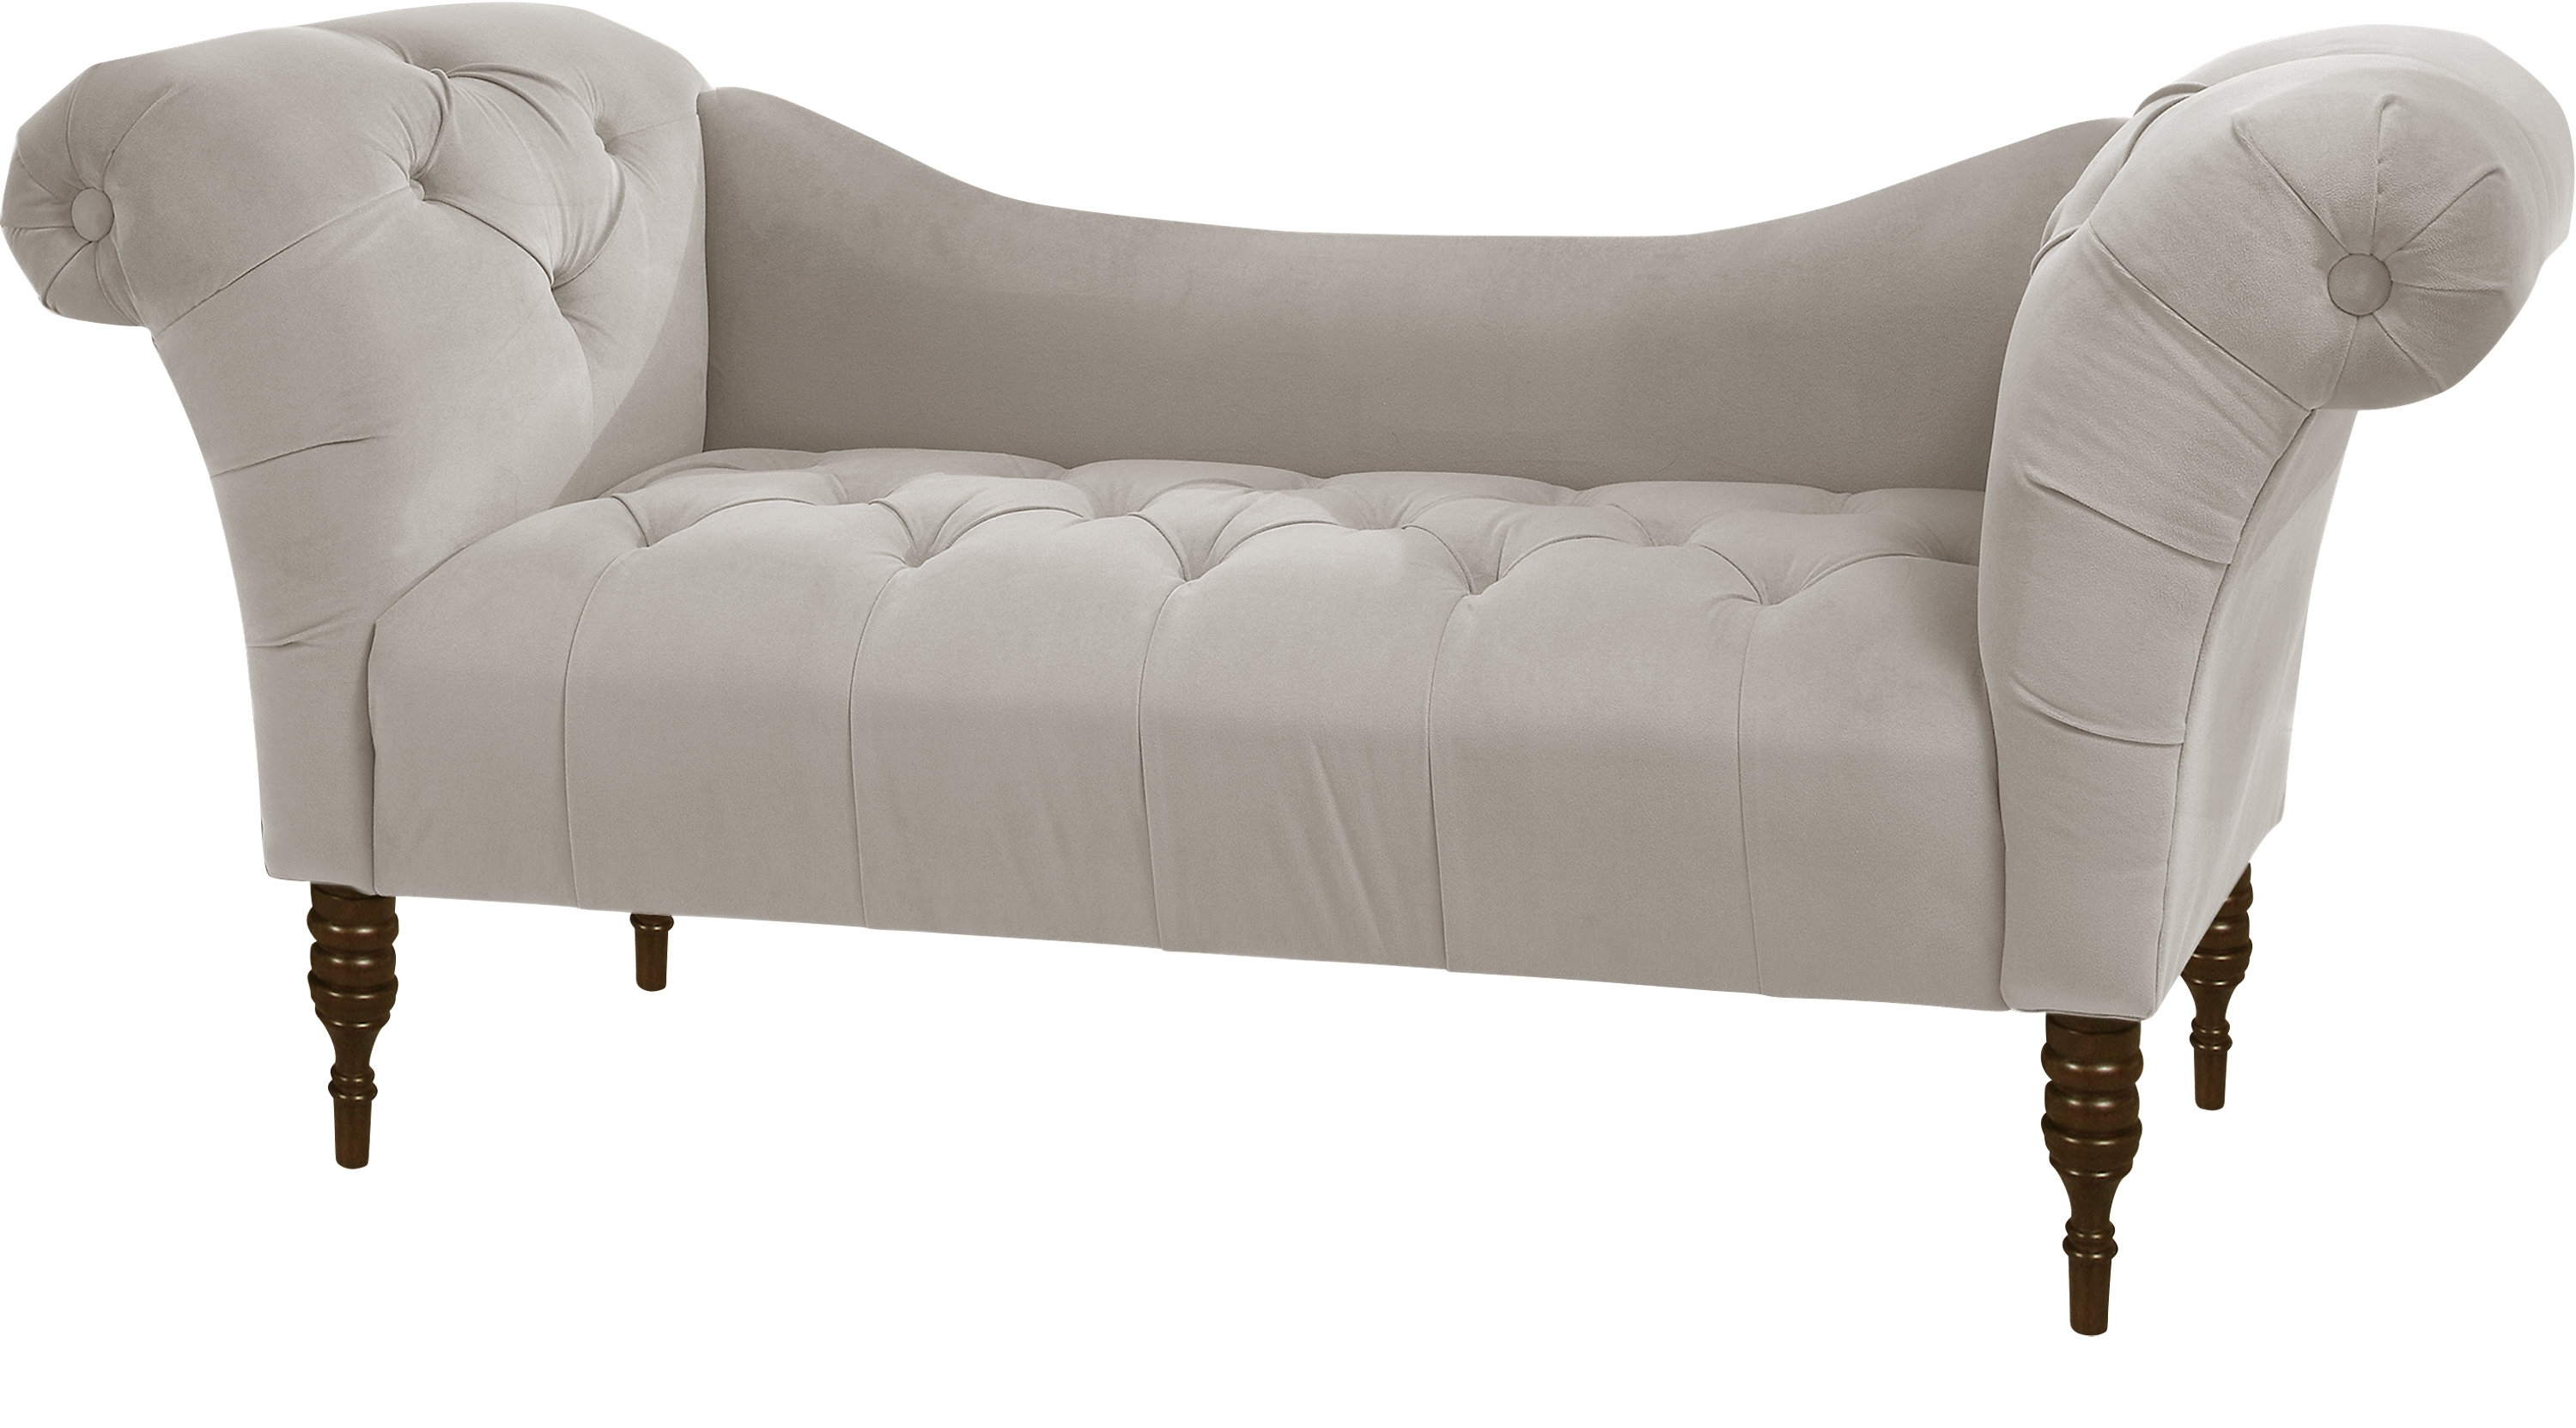 Grey Chaises – Grey Chaise Lounge Sofas With Most Recently Released Chaise Lounge Benchs (View 5 of 15)